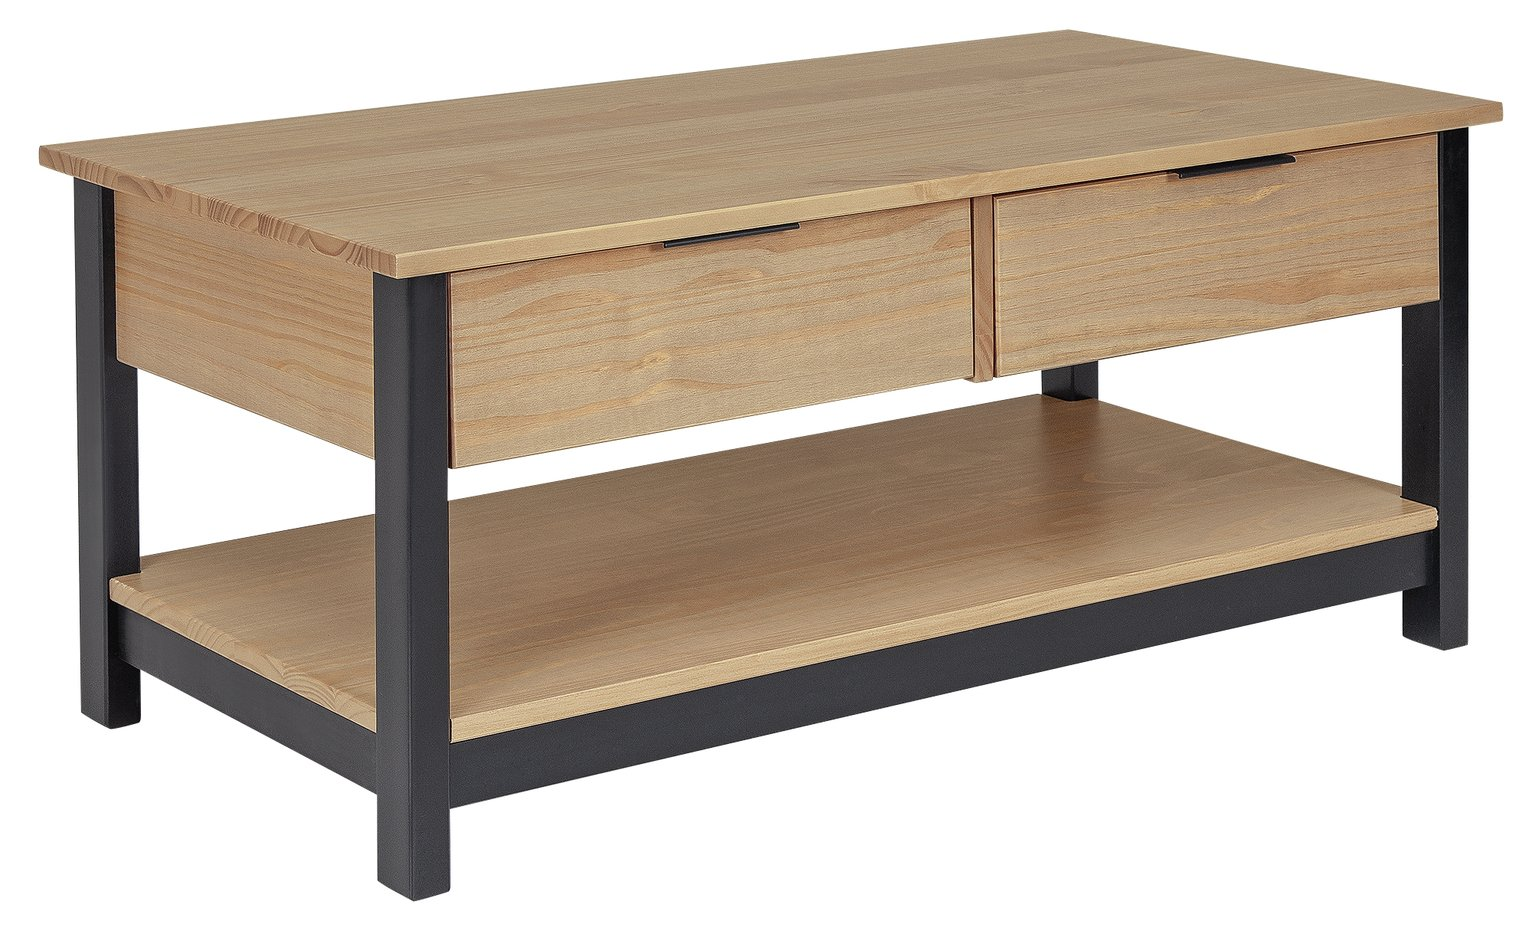 Argos Home Industrial Pine Coffee Table - Natural